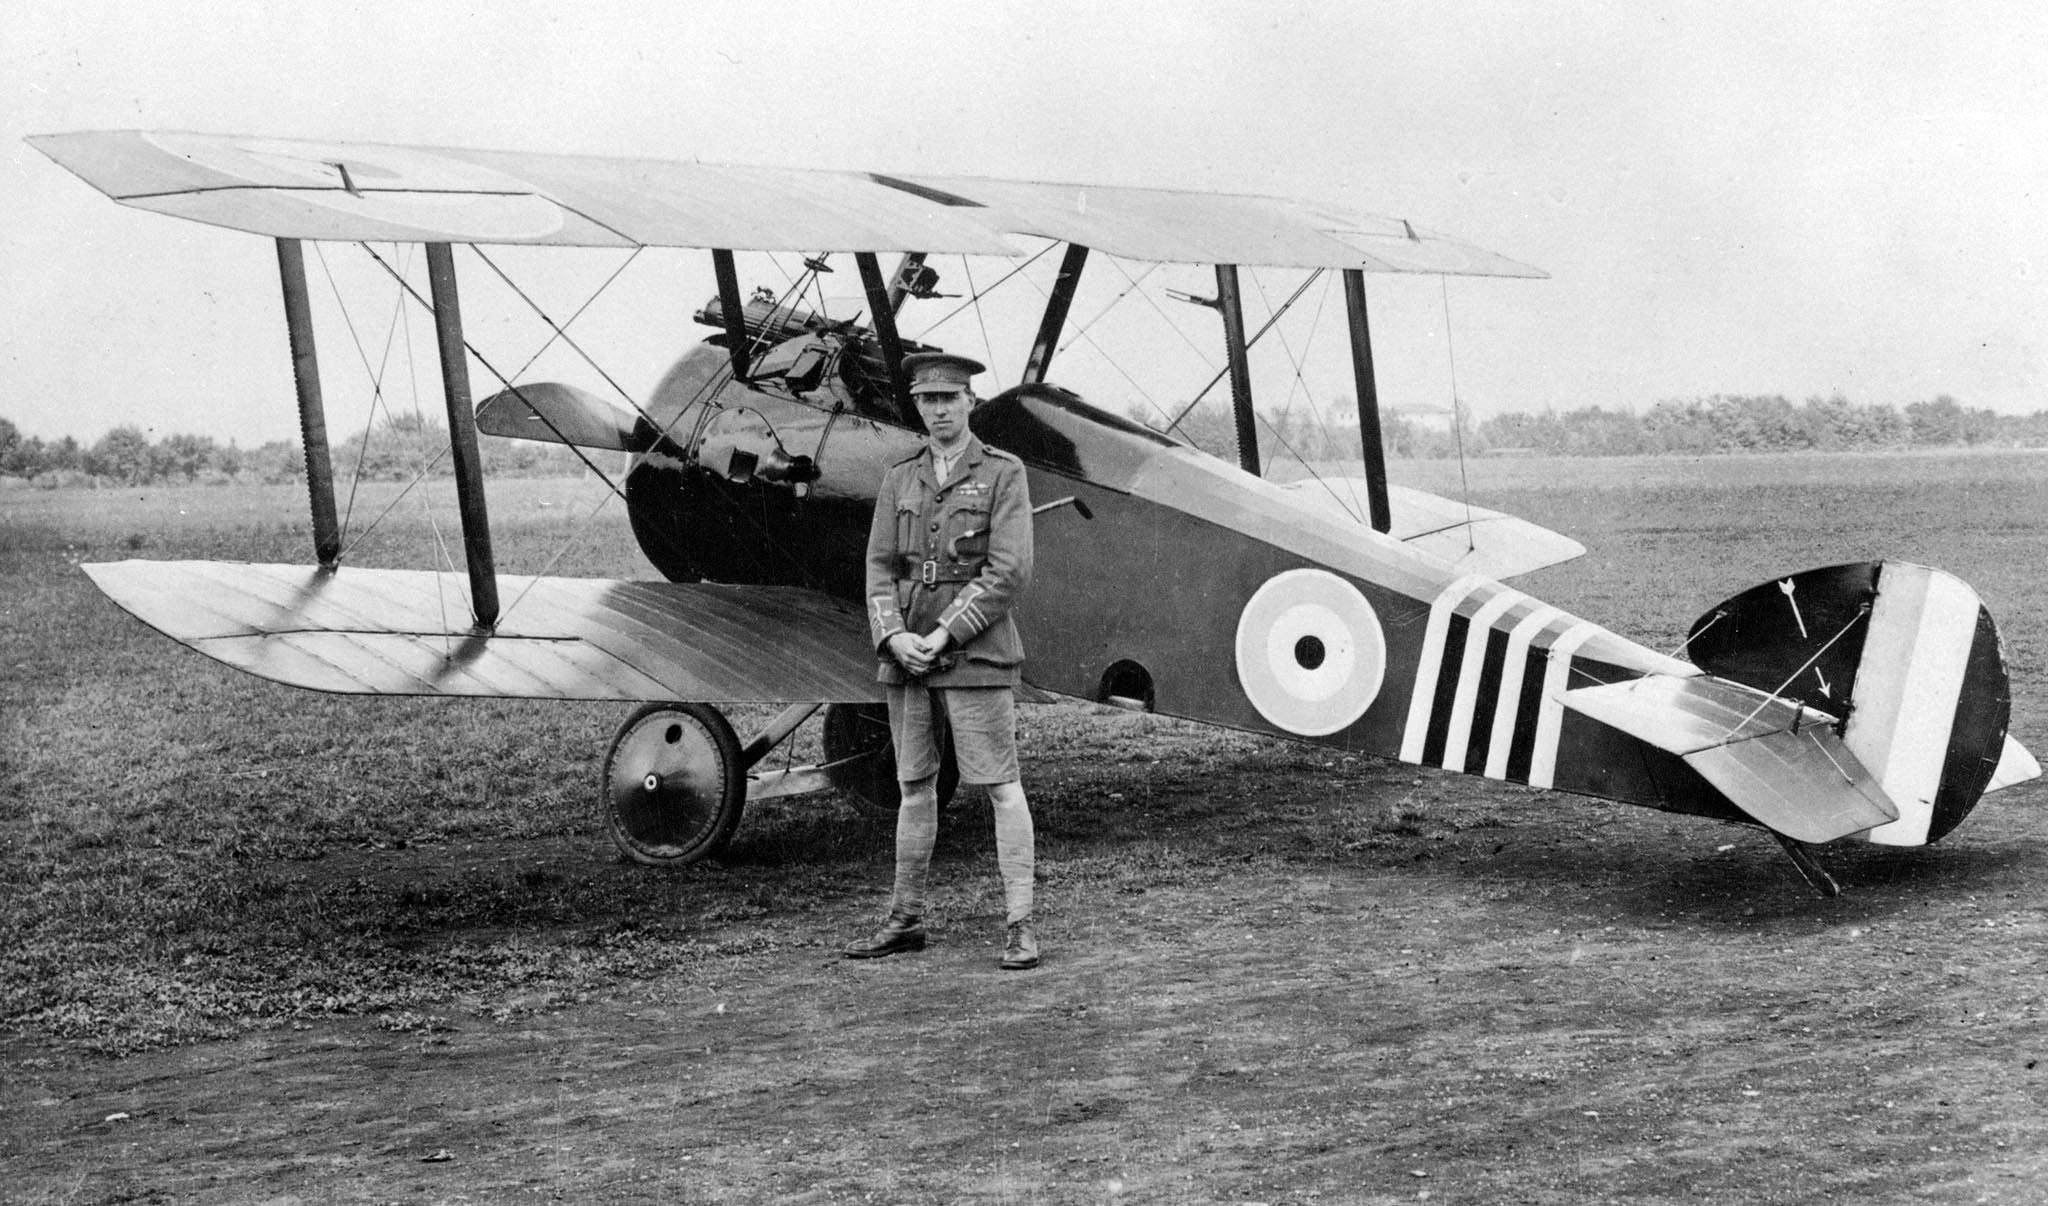 An old black and white photograph of a man in military uniform standing in front of a bi-plane.